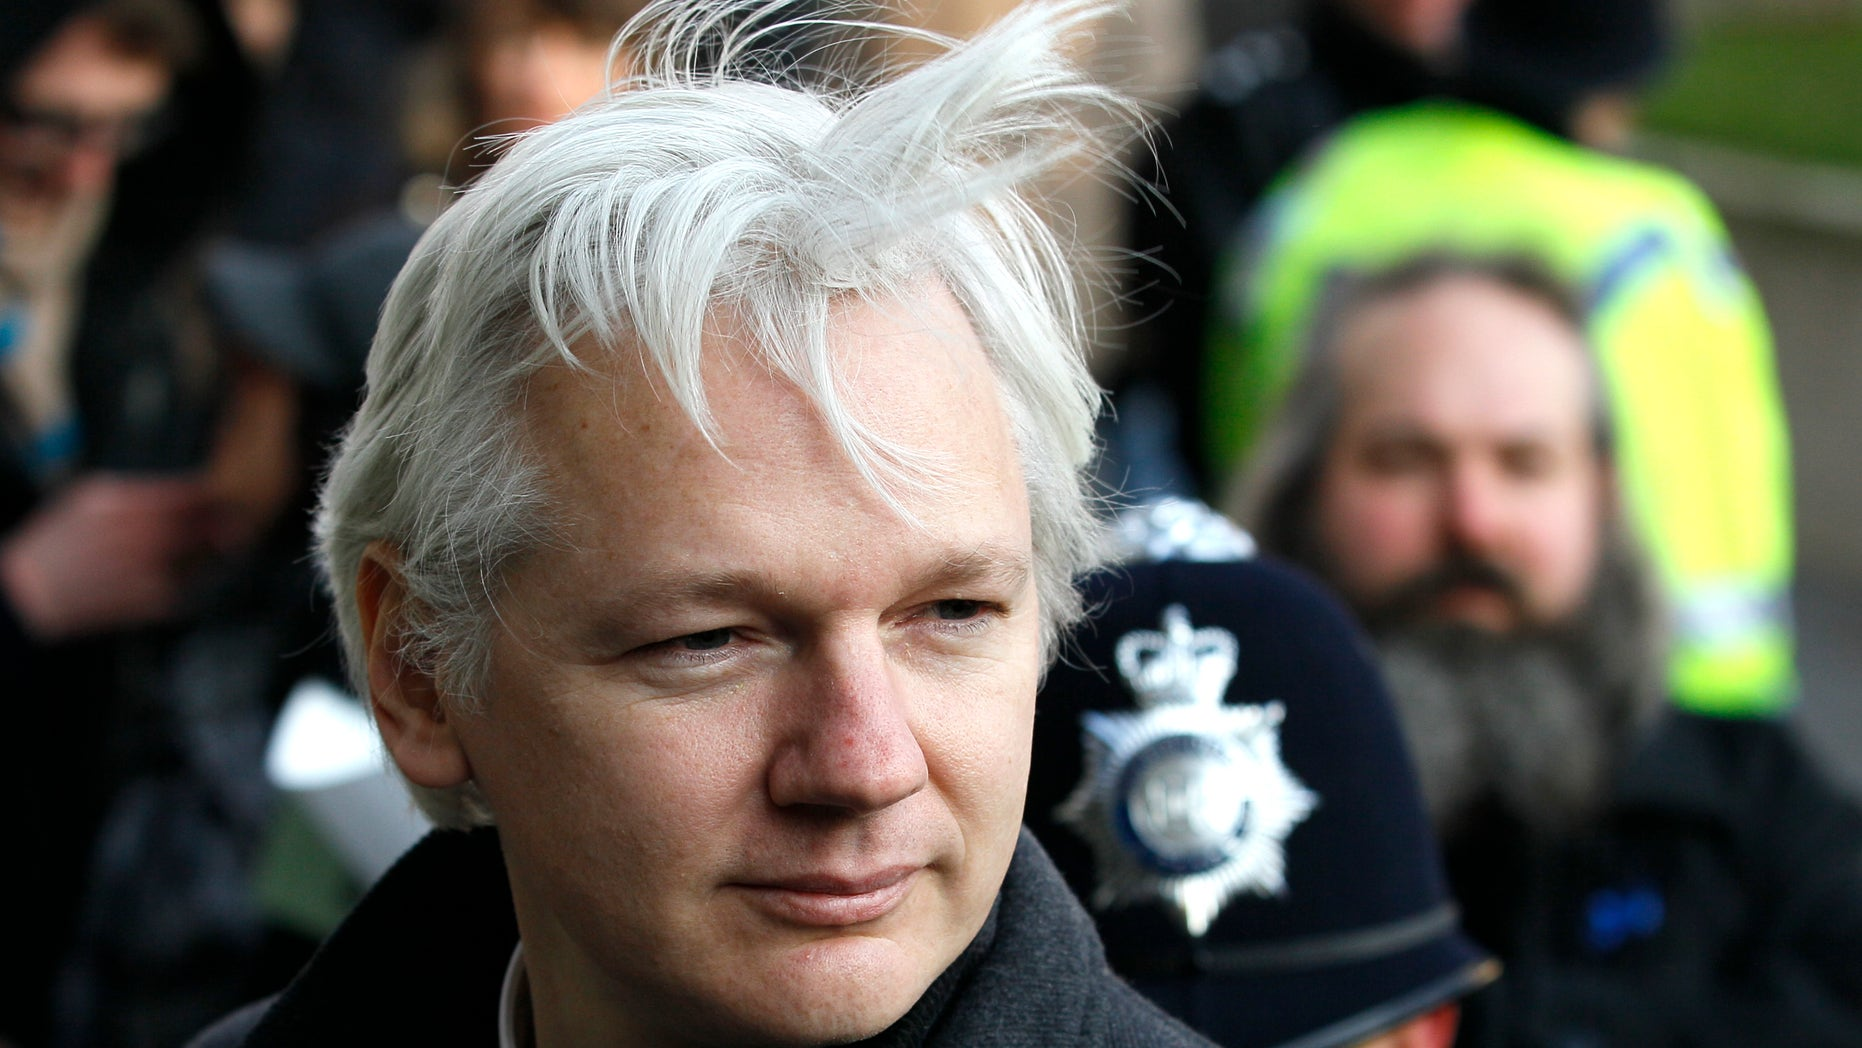 Feb. 1, 2012: Julian Assange, WikiLeaks founder, arrives at the Supreme Court in London.  Ecuador said Thursday that it was granting asylum to WikiLeaks founder Julian Assange, a decision that thrilled supporters but will do little to defuse the standoff at the Latin American nation's London embassy, where the Australian ex-hacker has been holed up for almost two months.